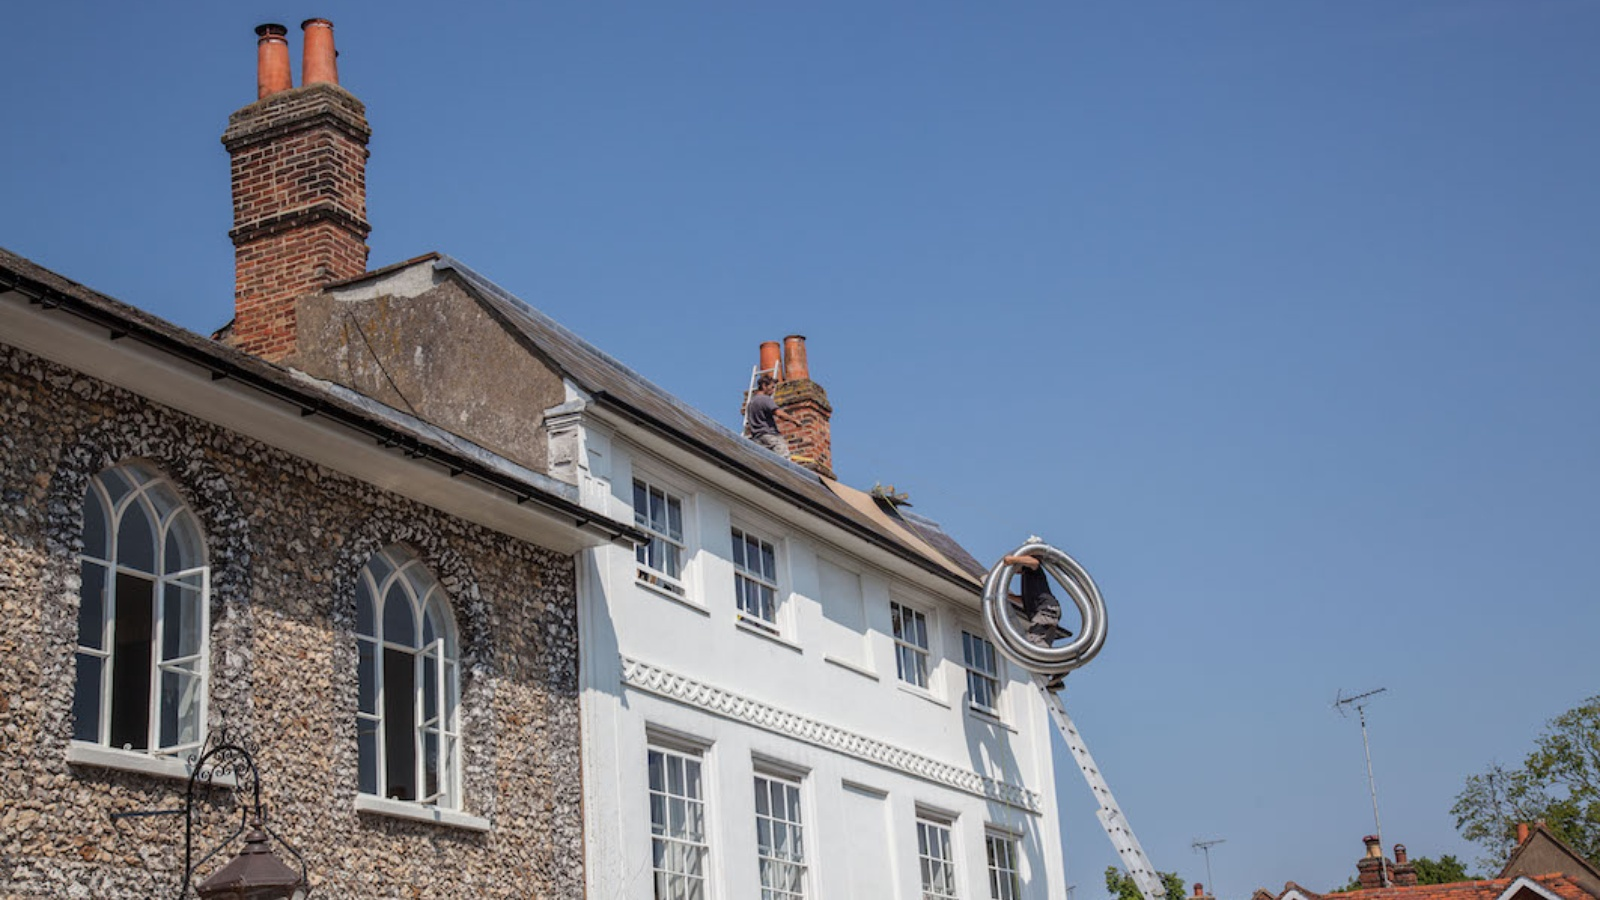 Accessing the roof of a listed property using ladders.